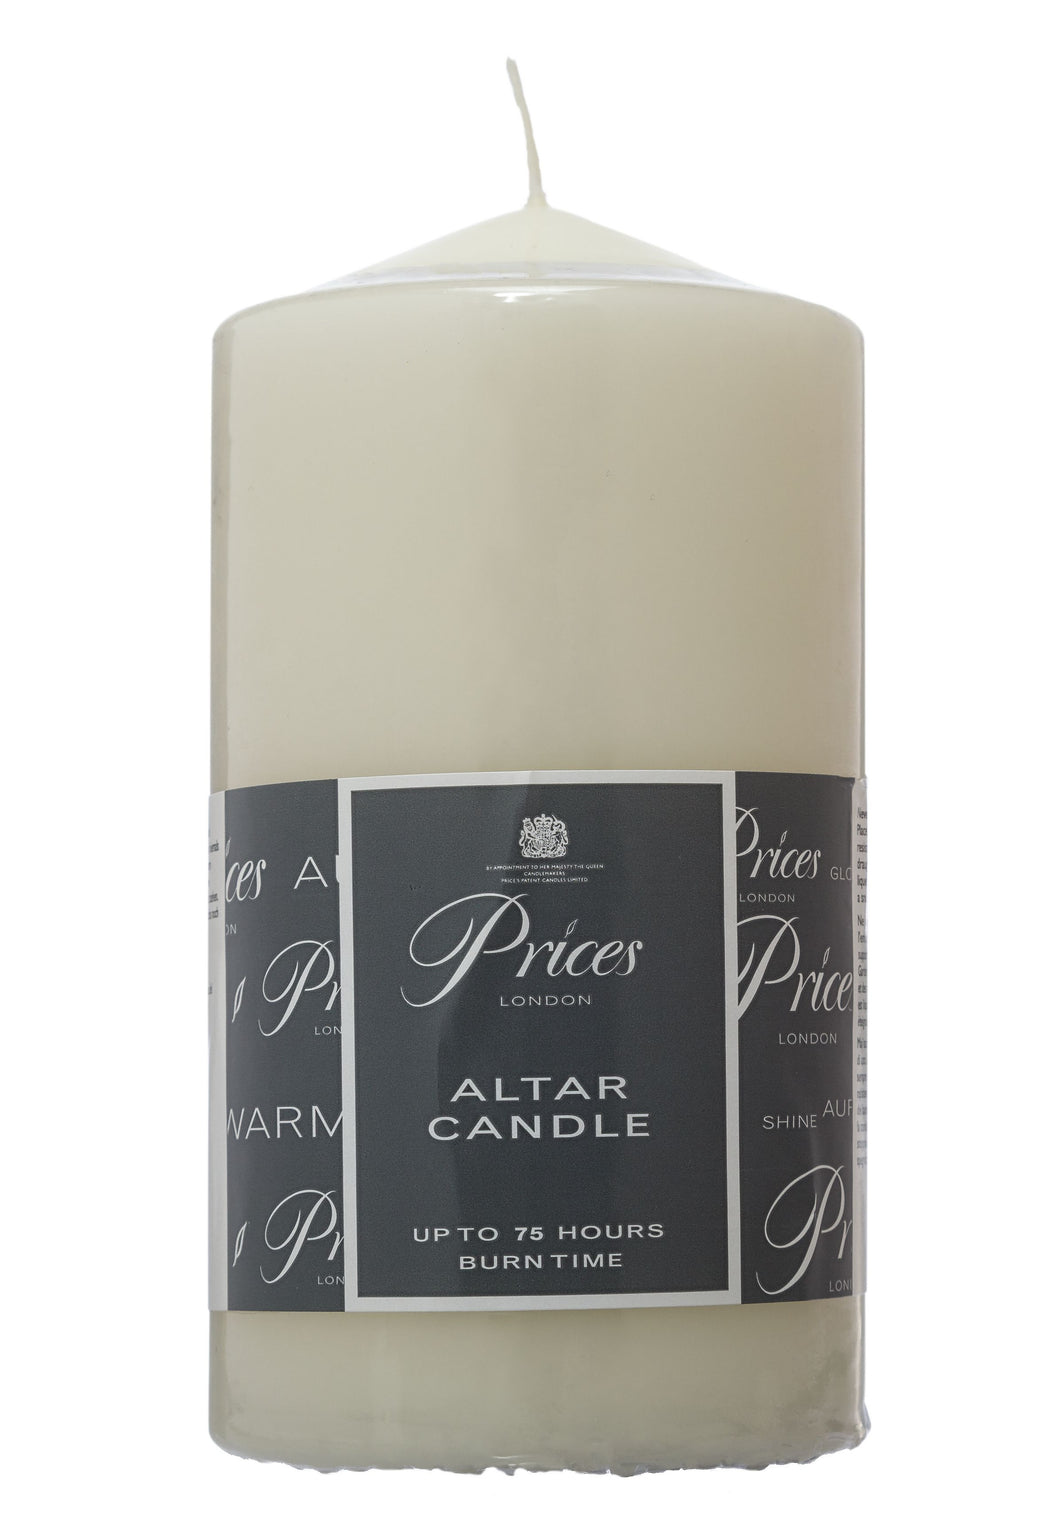 Price's Altar Candle 150 x 80